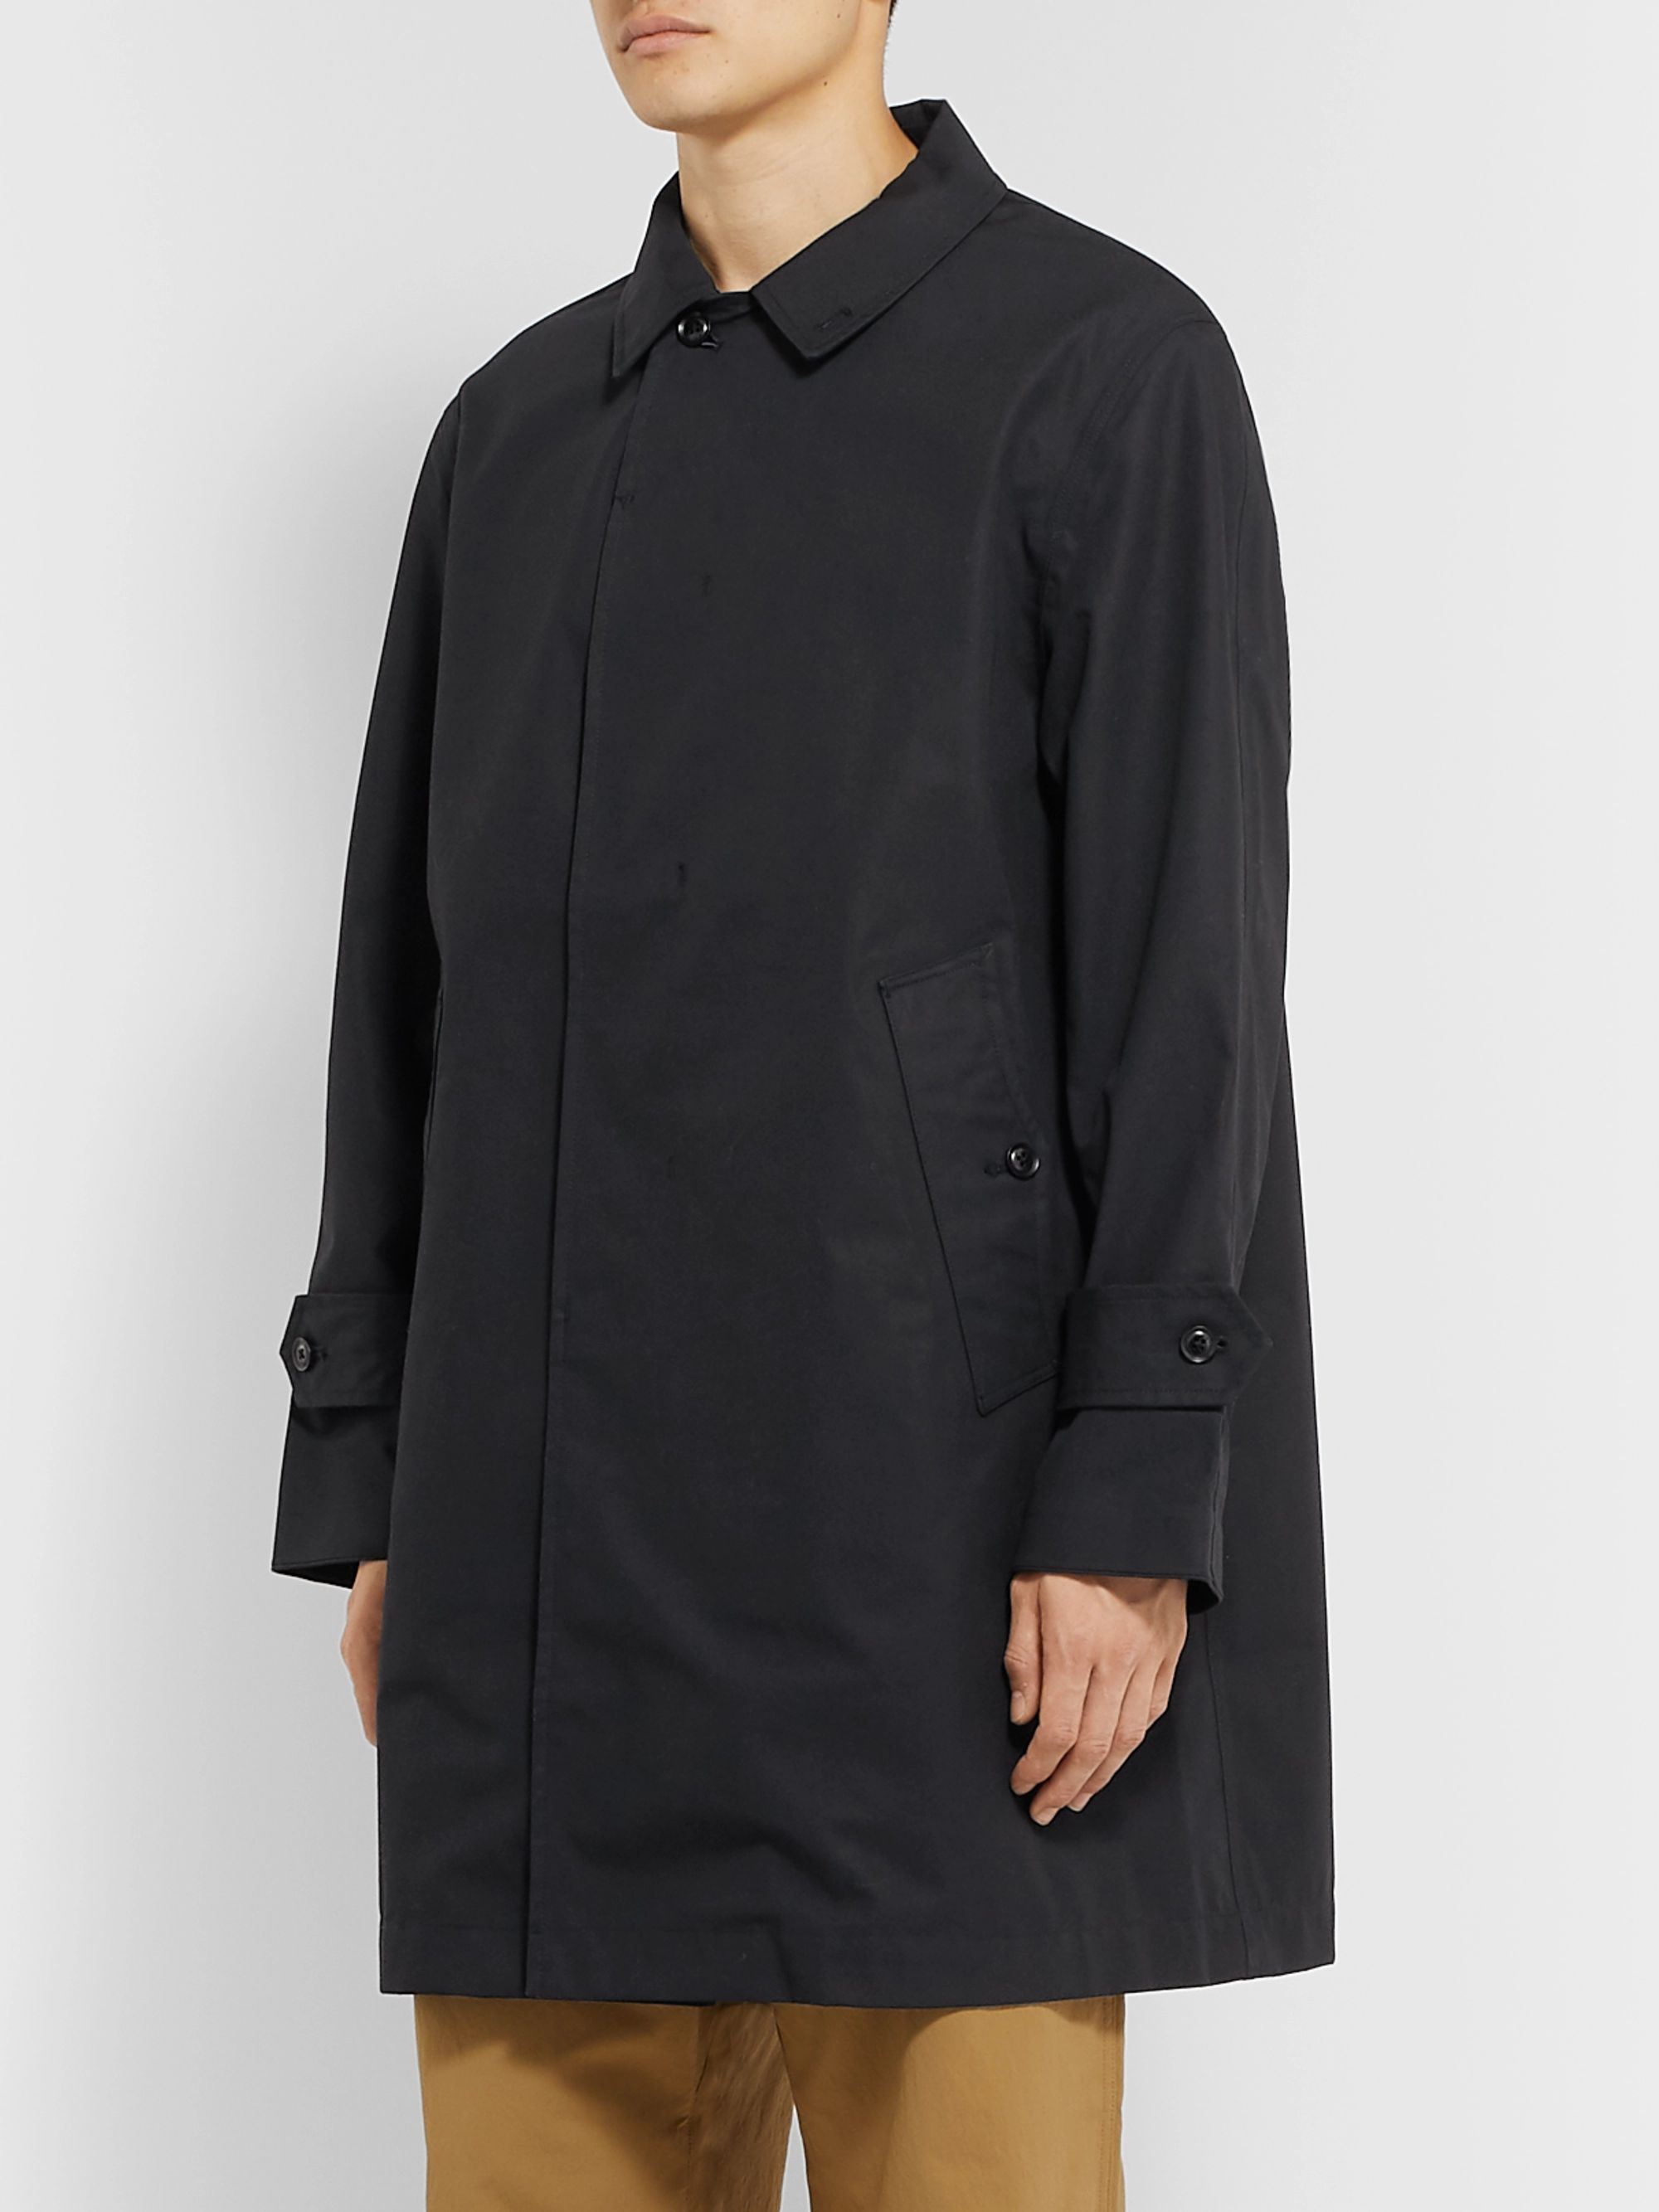 nanamica GORE-TEX Cotton Coat